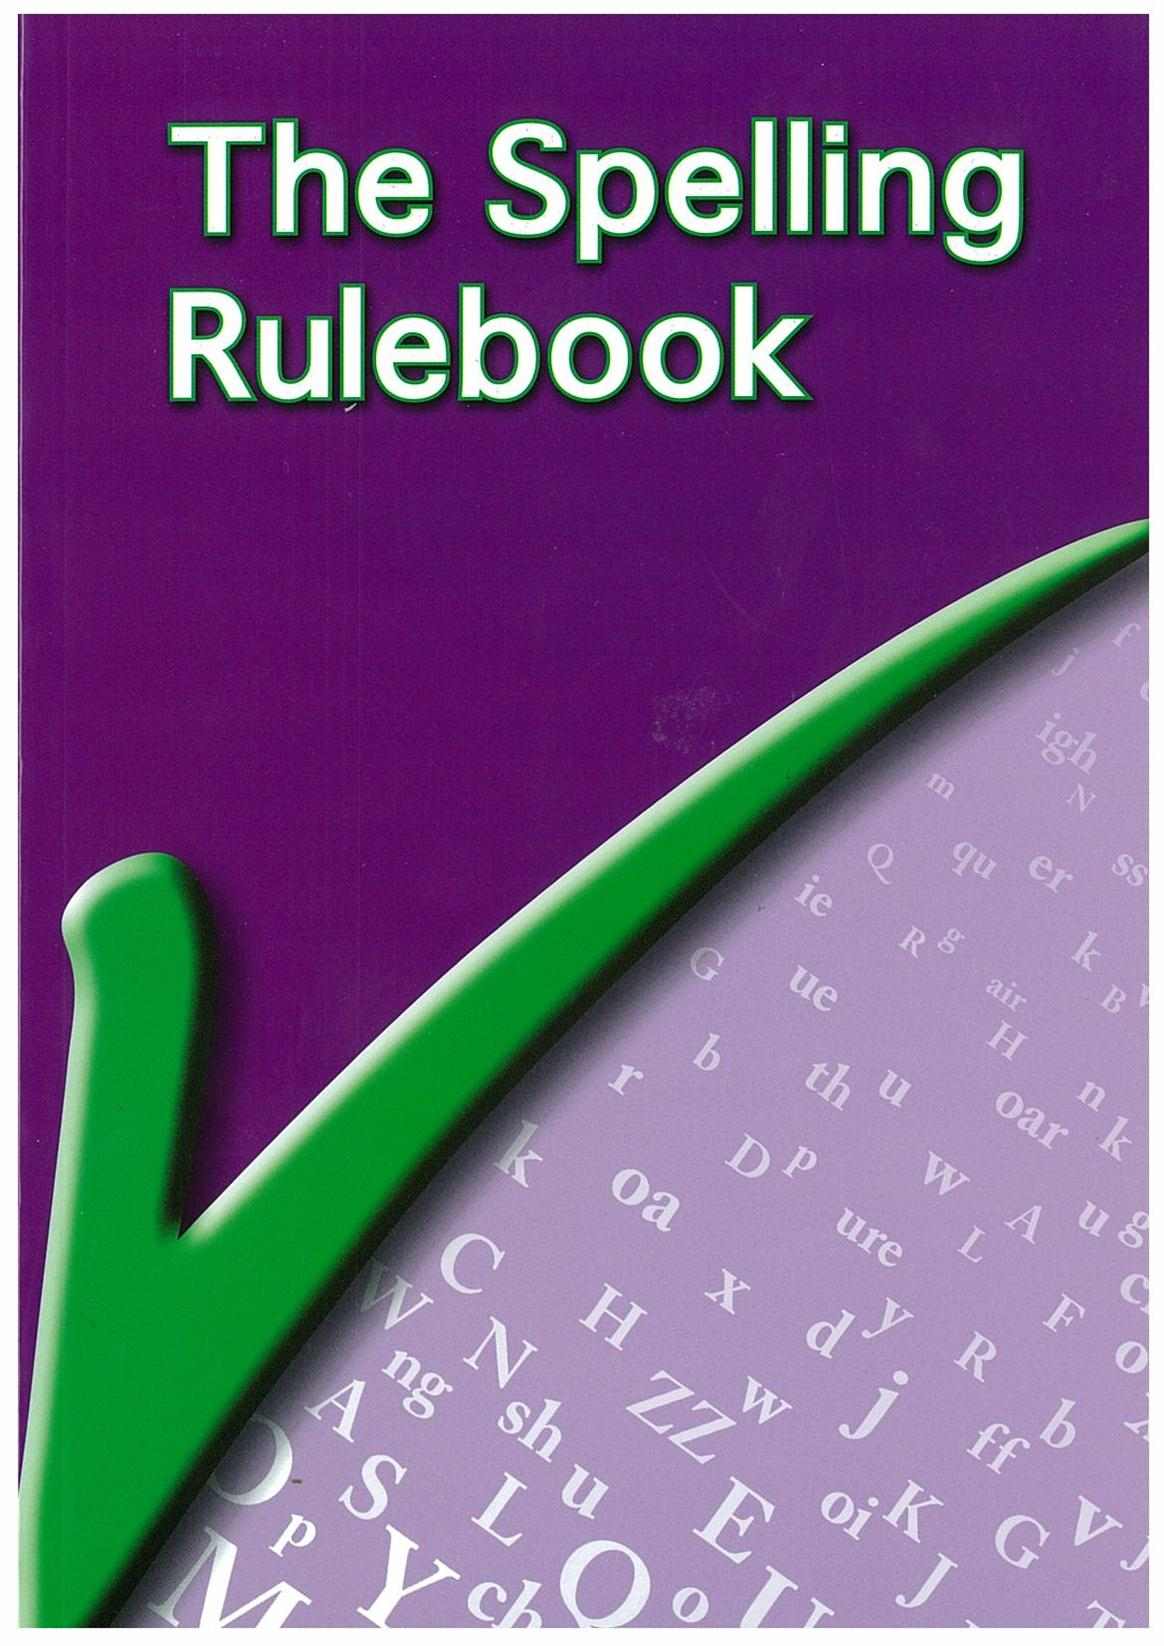 The Spelling Rulebook (Cover)